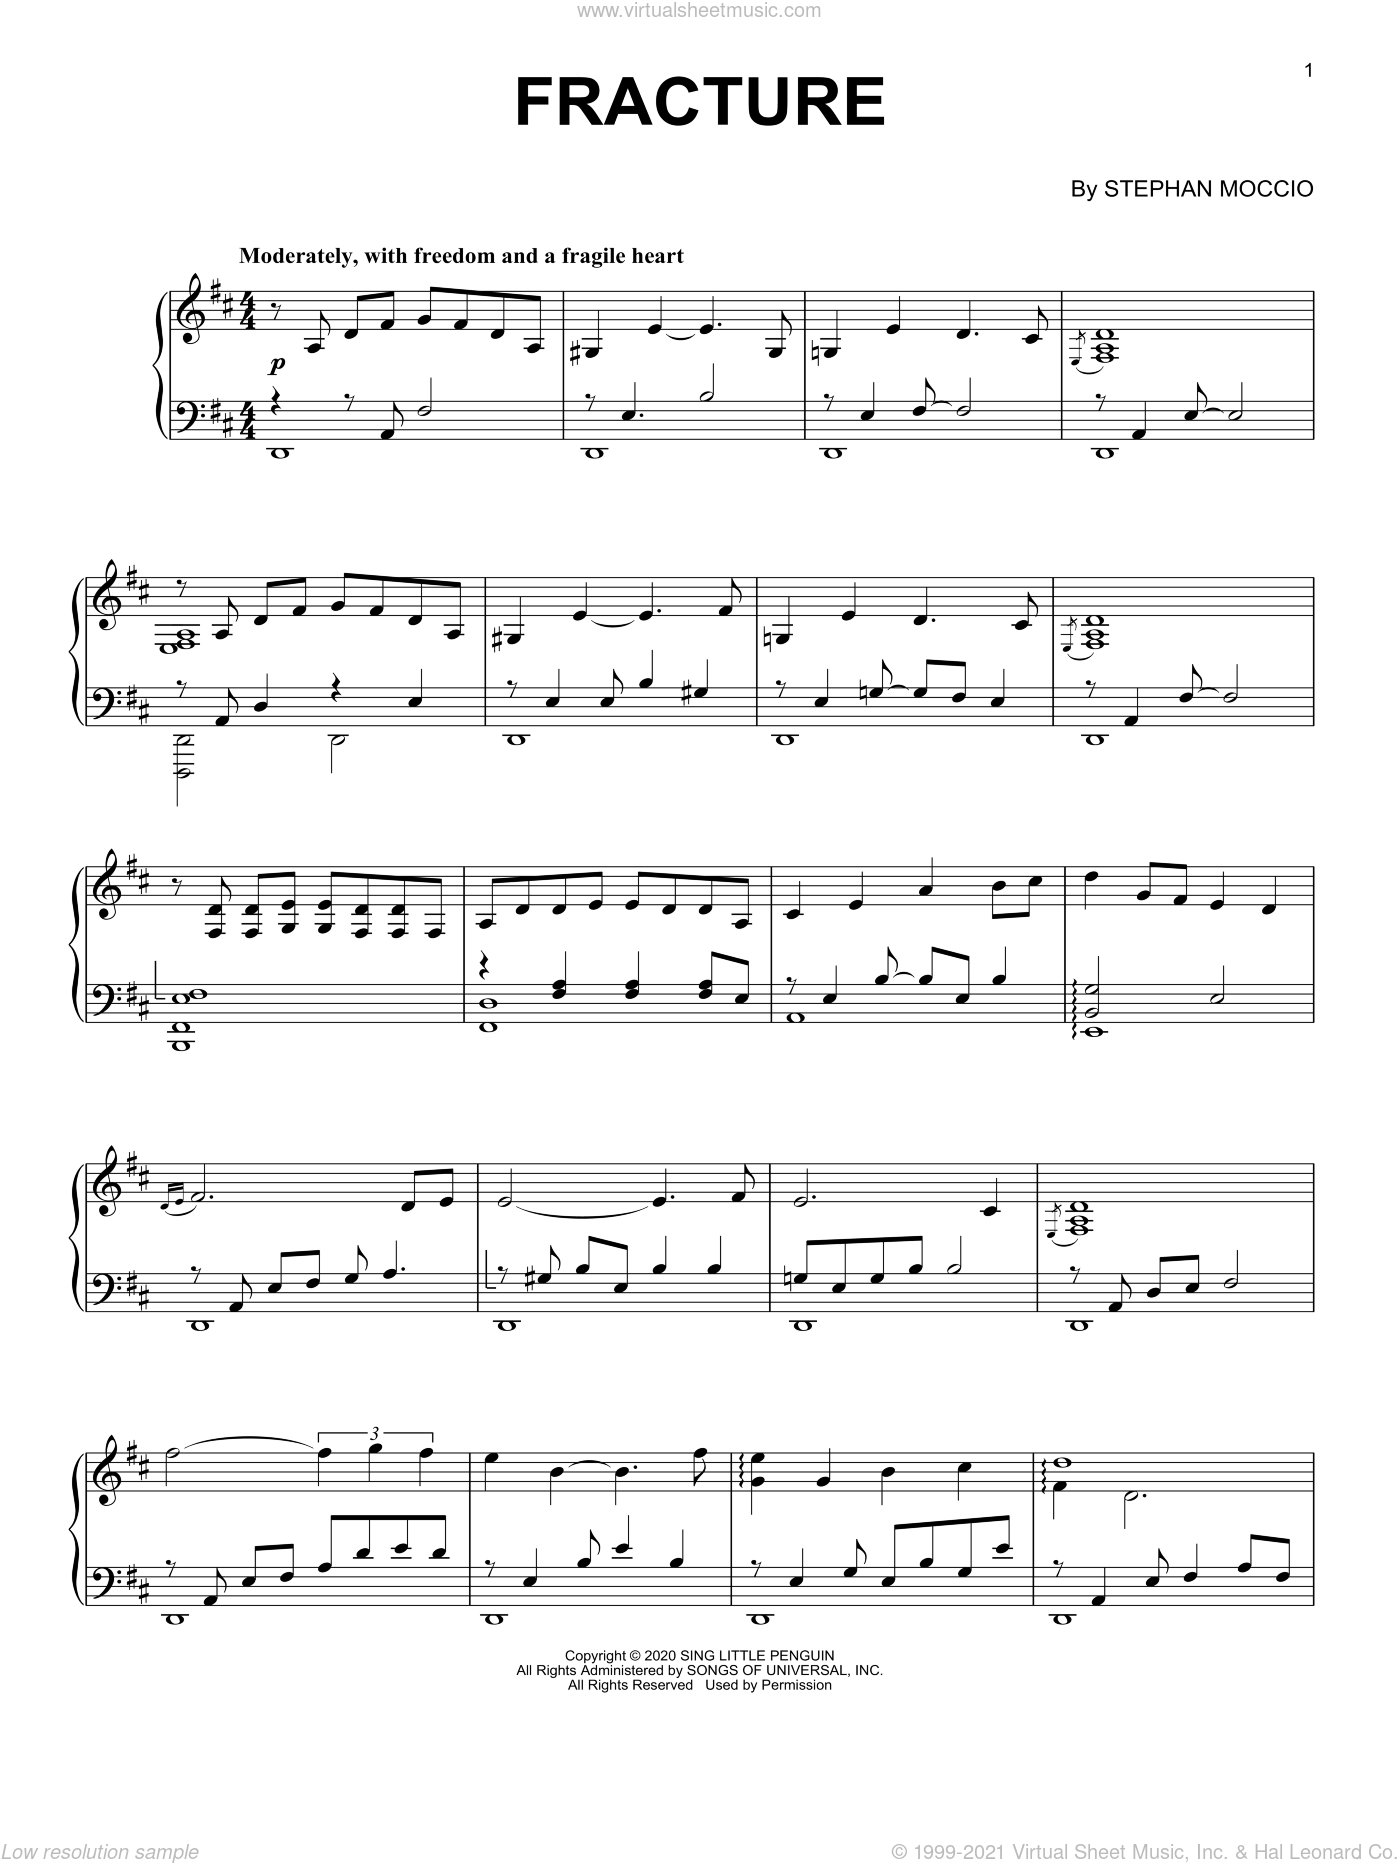 Fracture sheet music for piano solo by Stephan Moccio, classical score, intermediate skill level